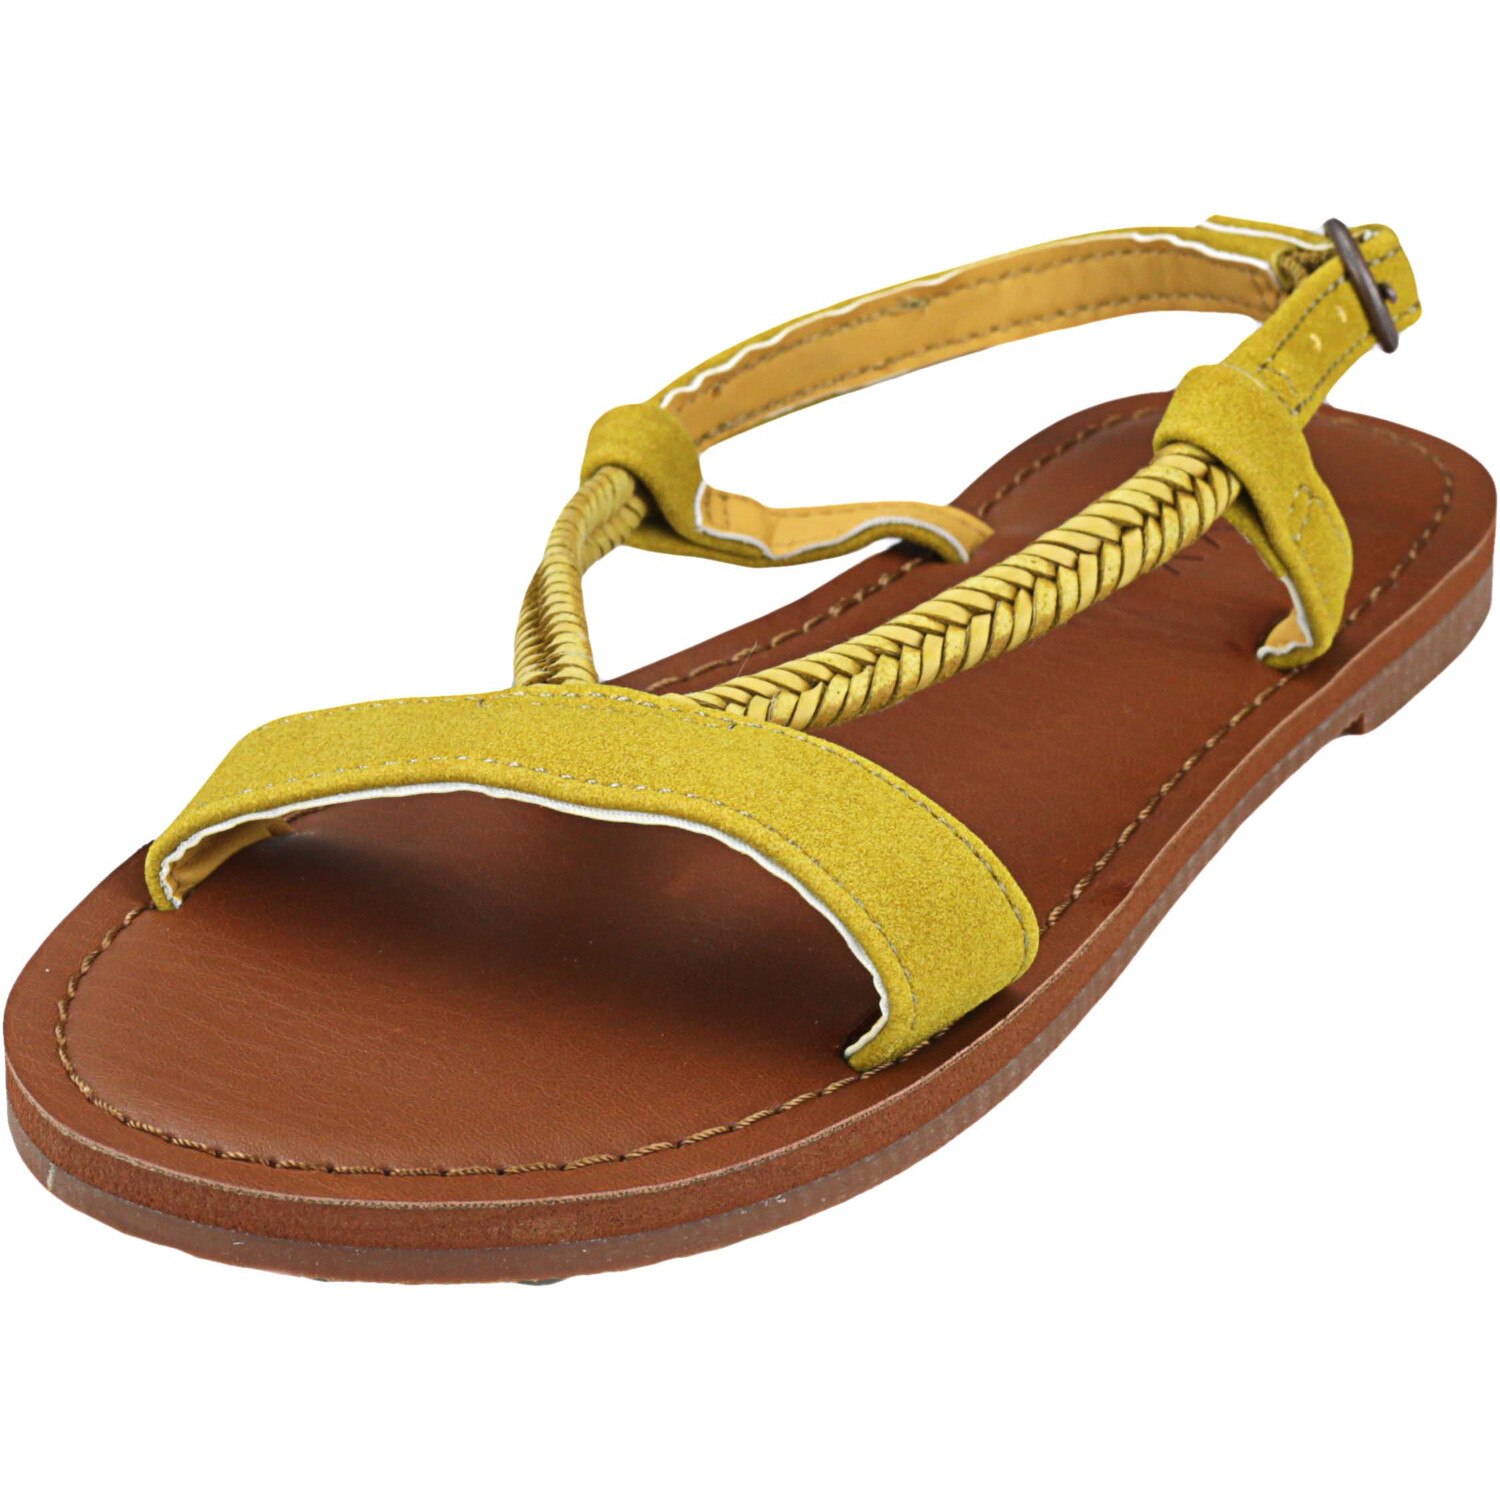 Roxy Women's Kitty Mustard Ankle-High Sandal - 5M